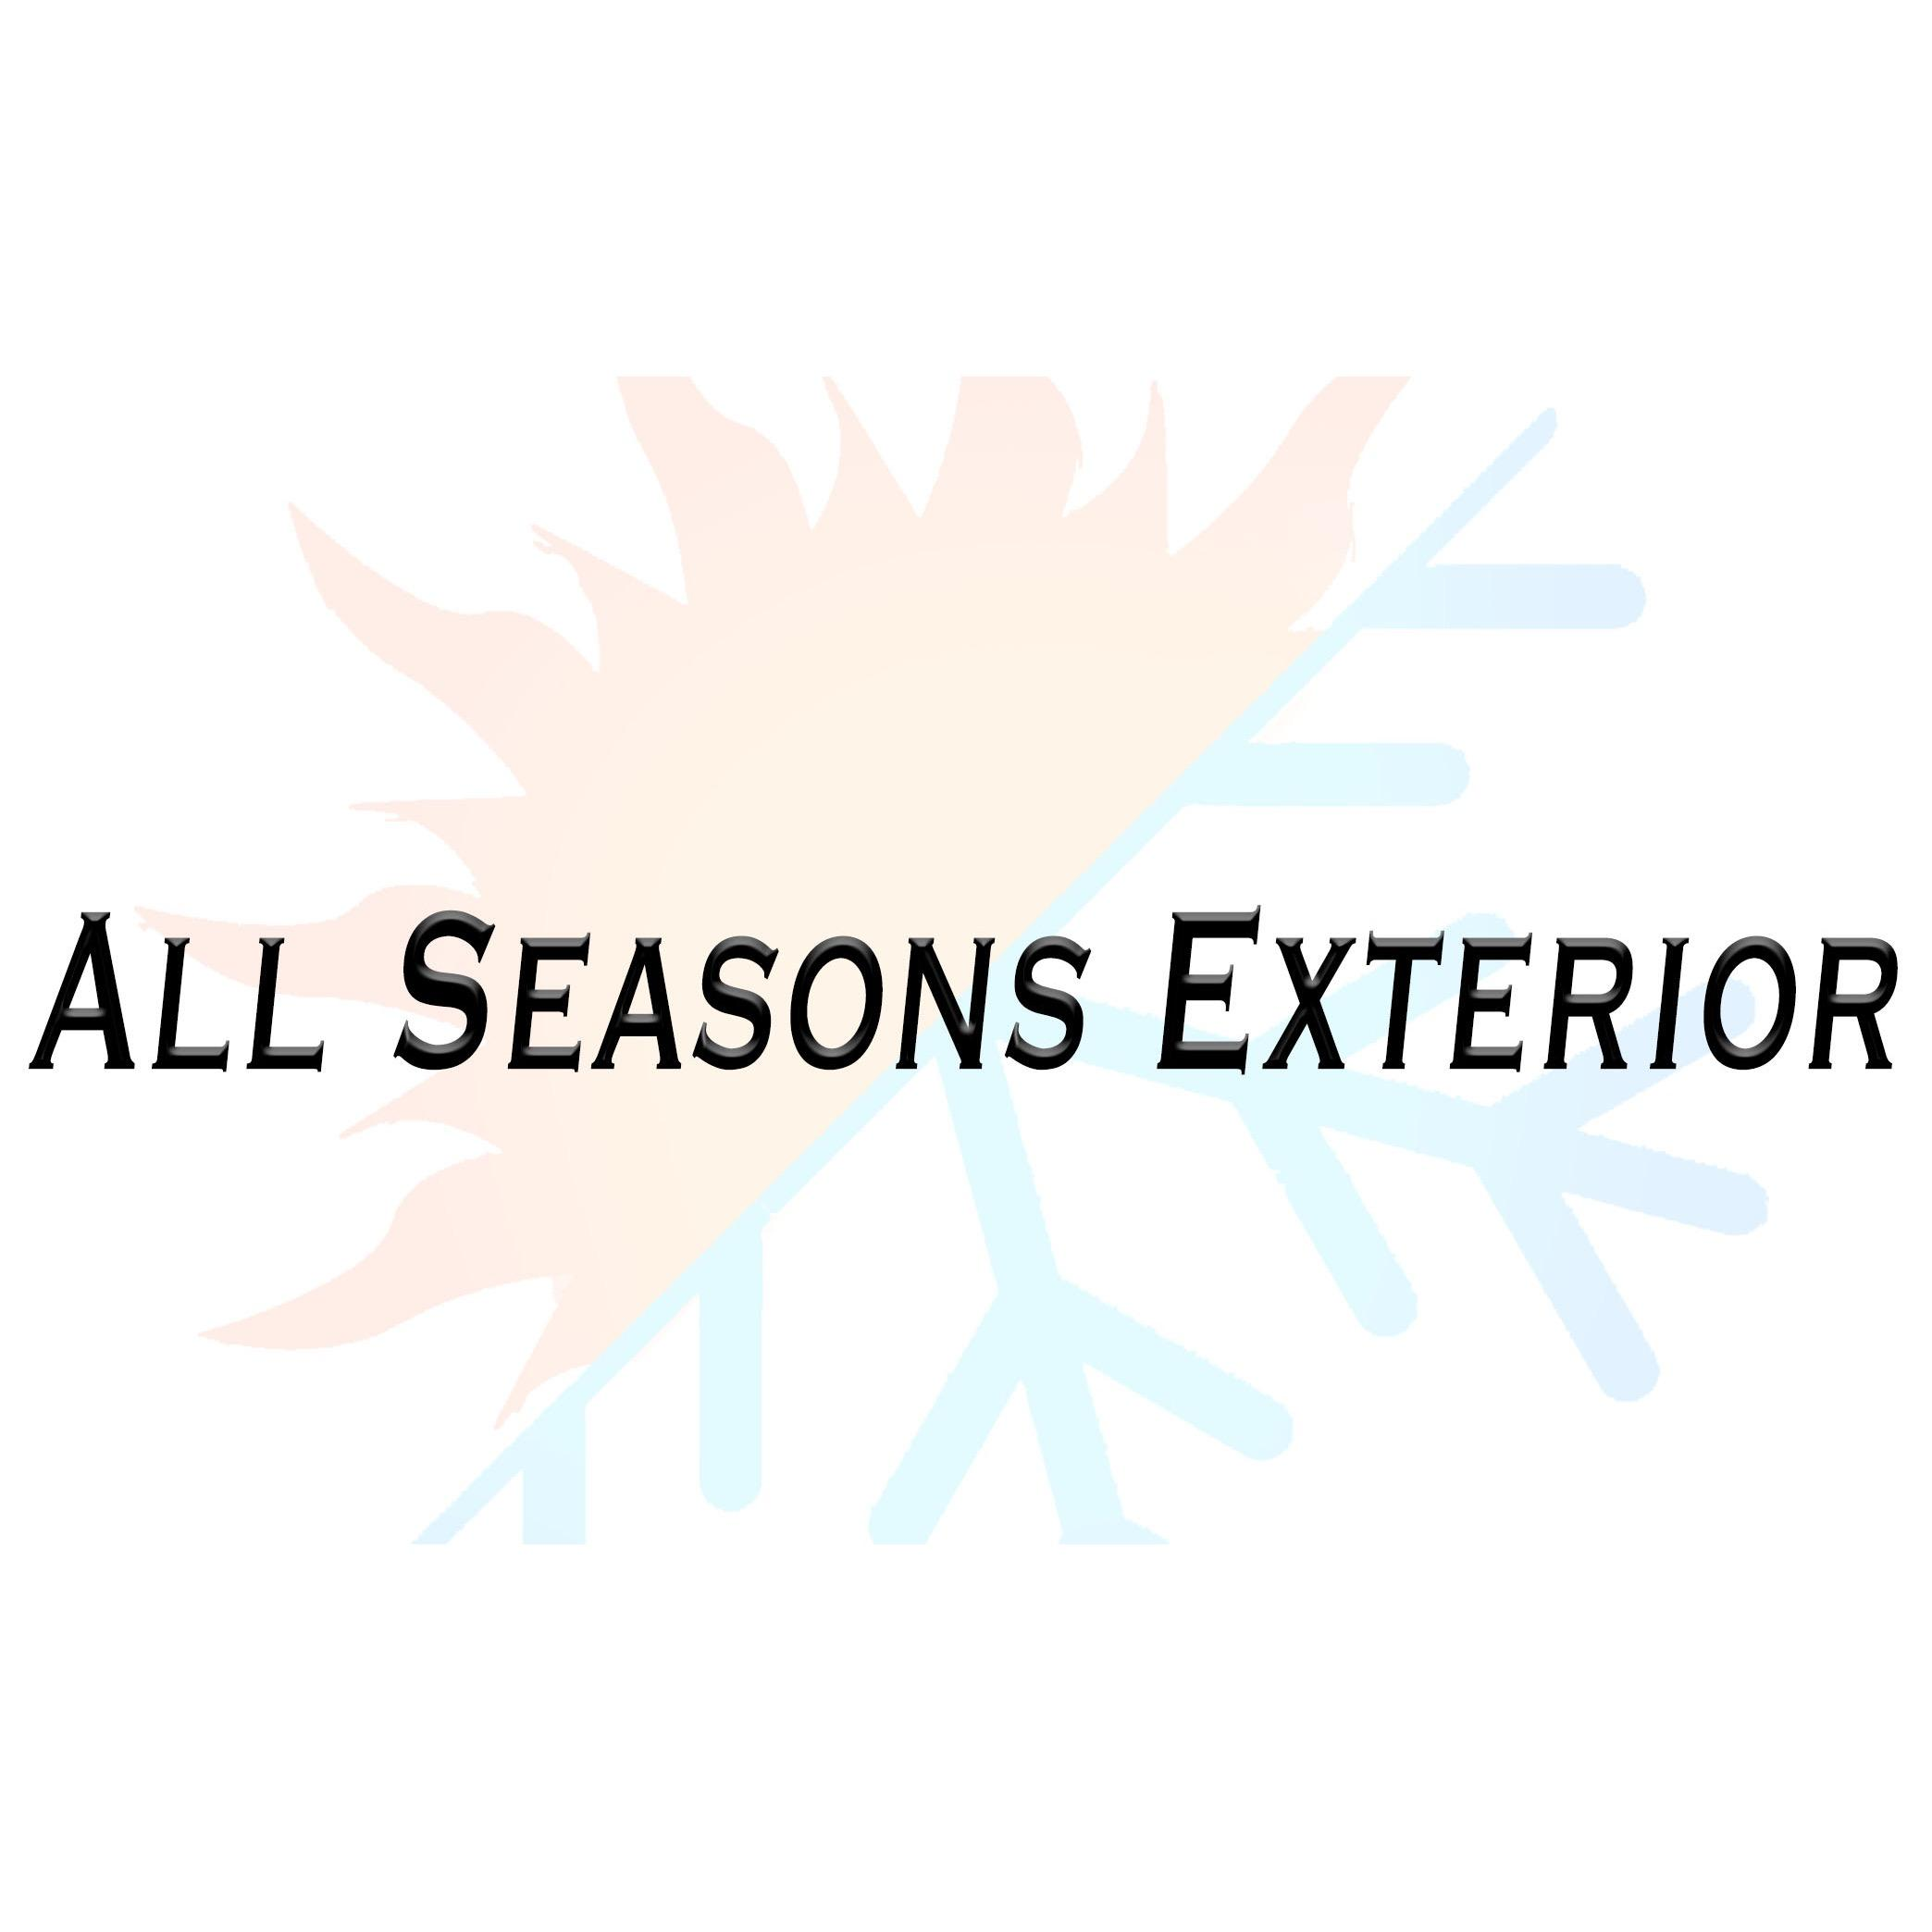 All Seasons Exterior